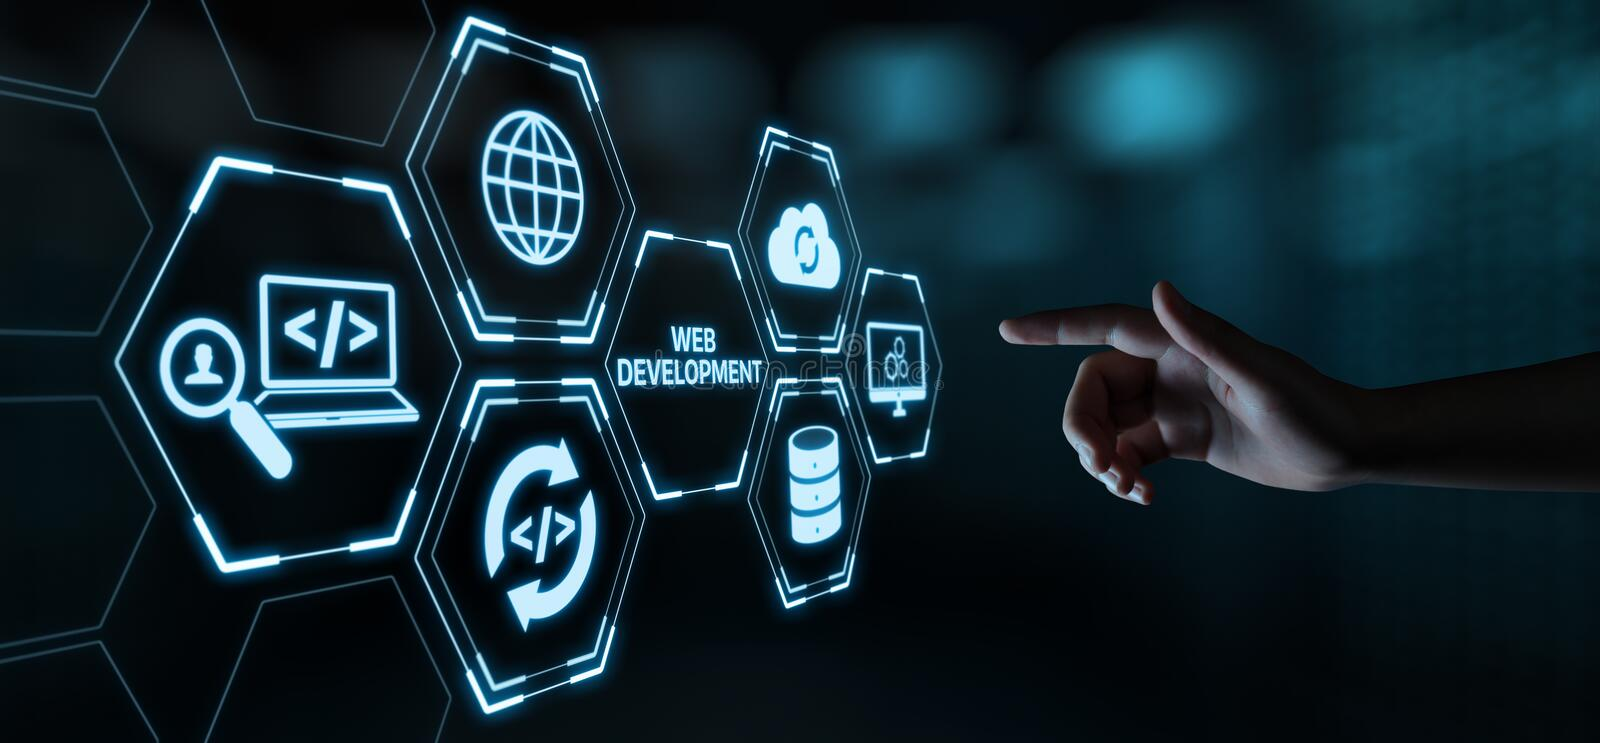 Web Development Coding Programming Internet Technology Business concept.  stock images